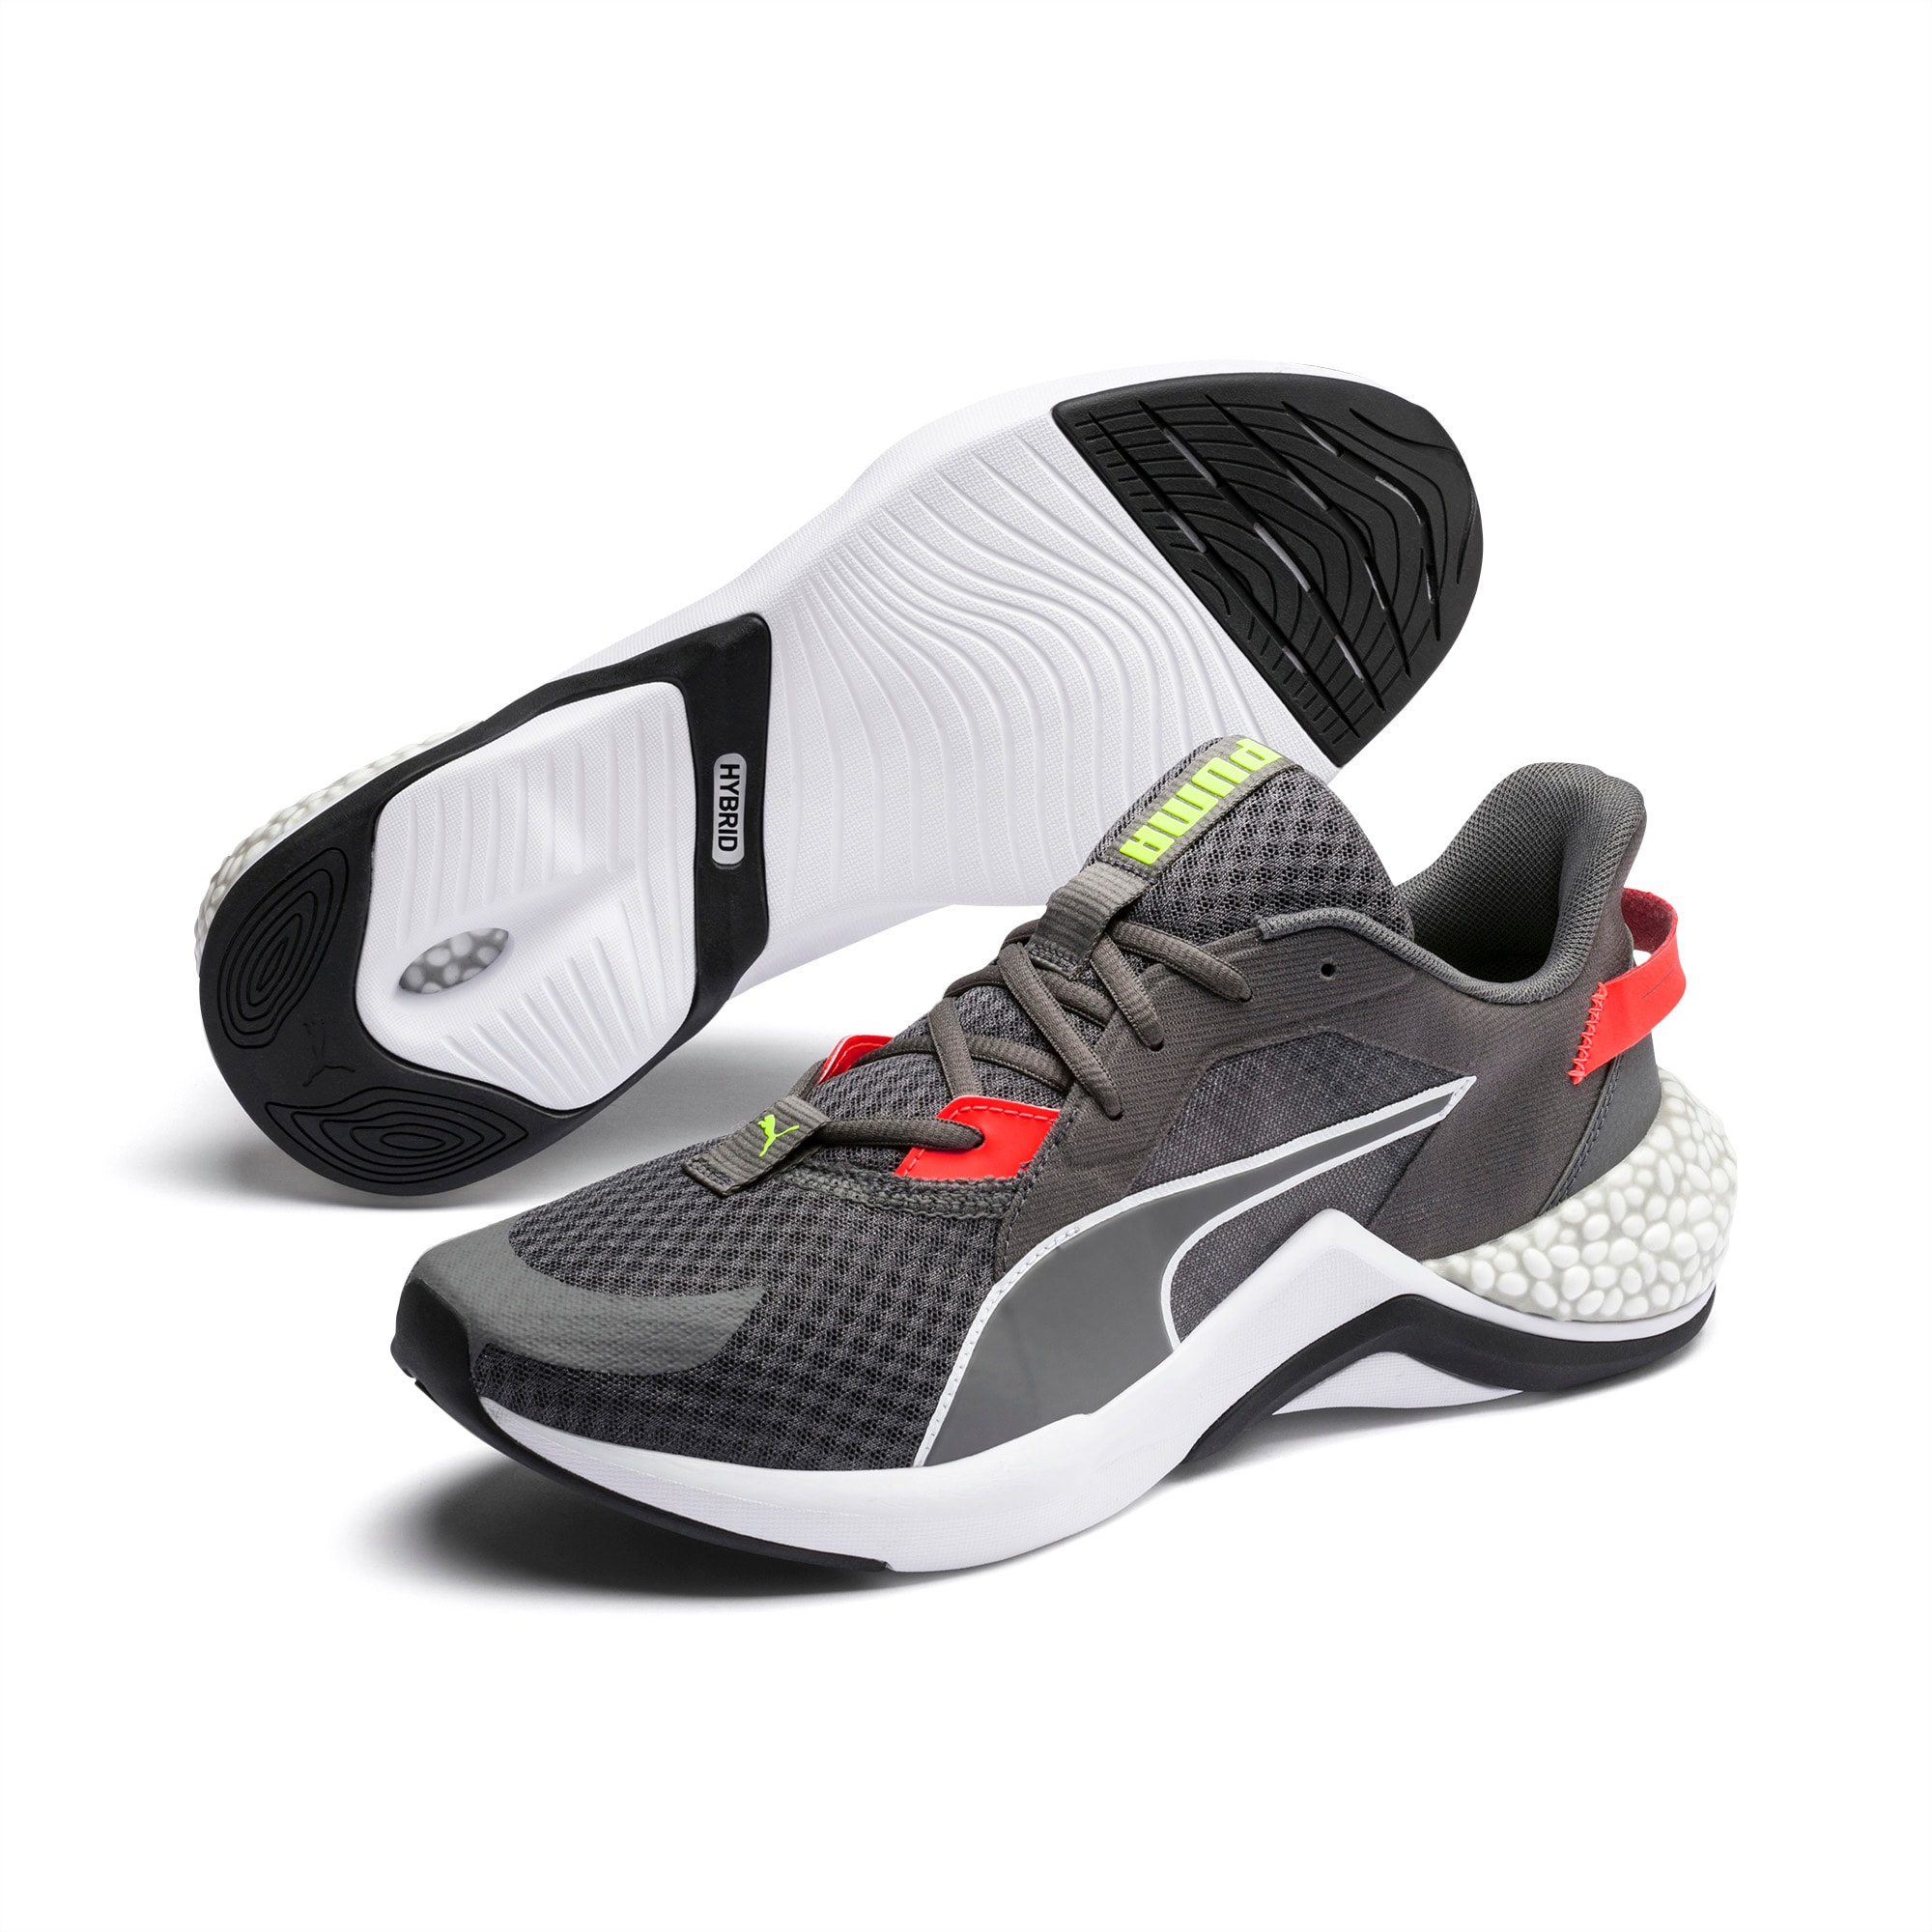 HYBRID NX Ozone Men's Running Shoes